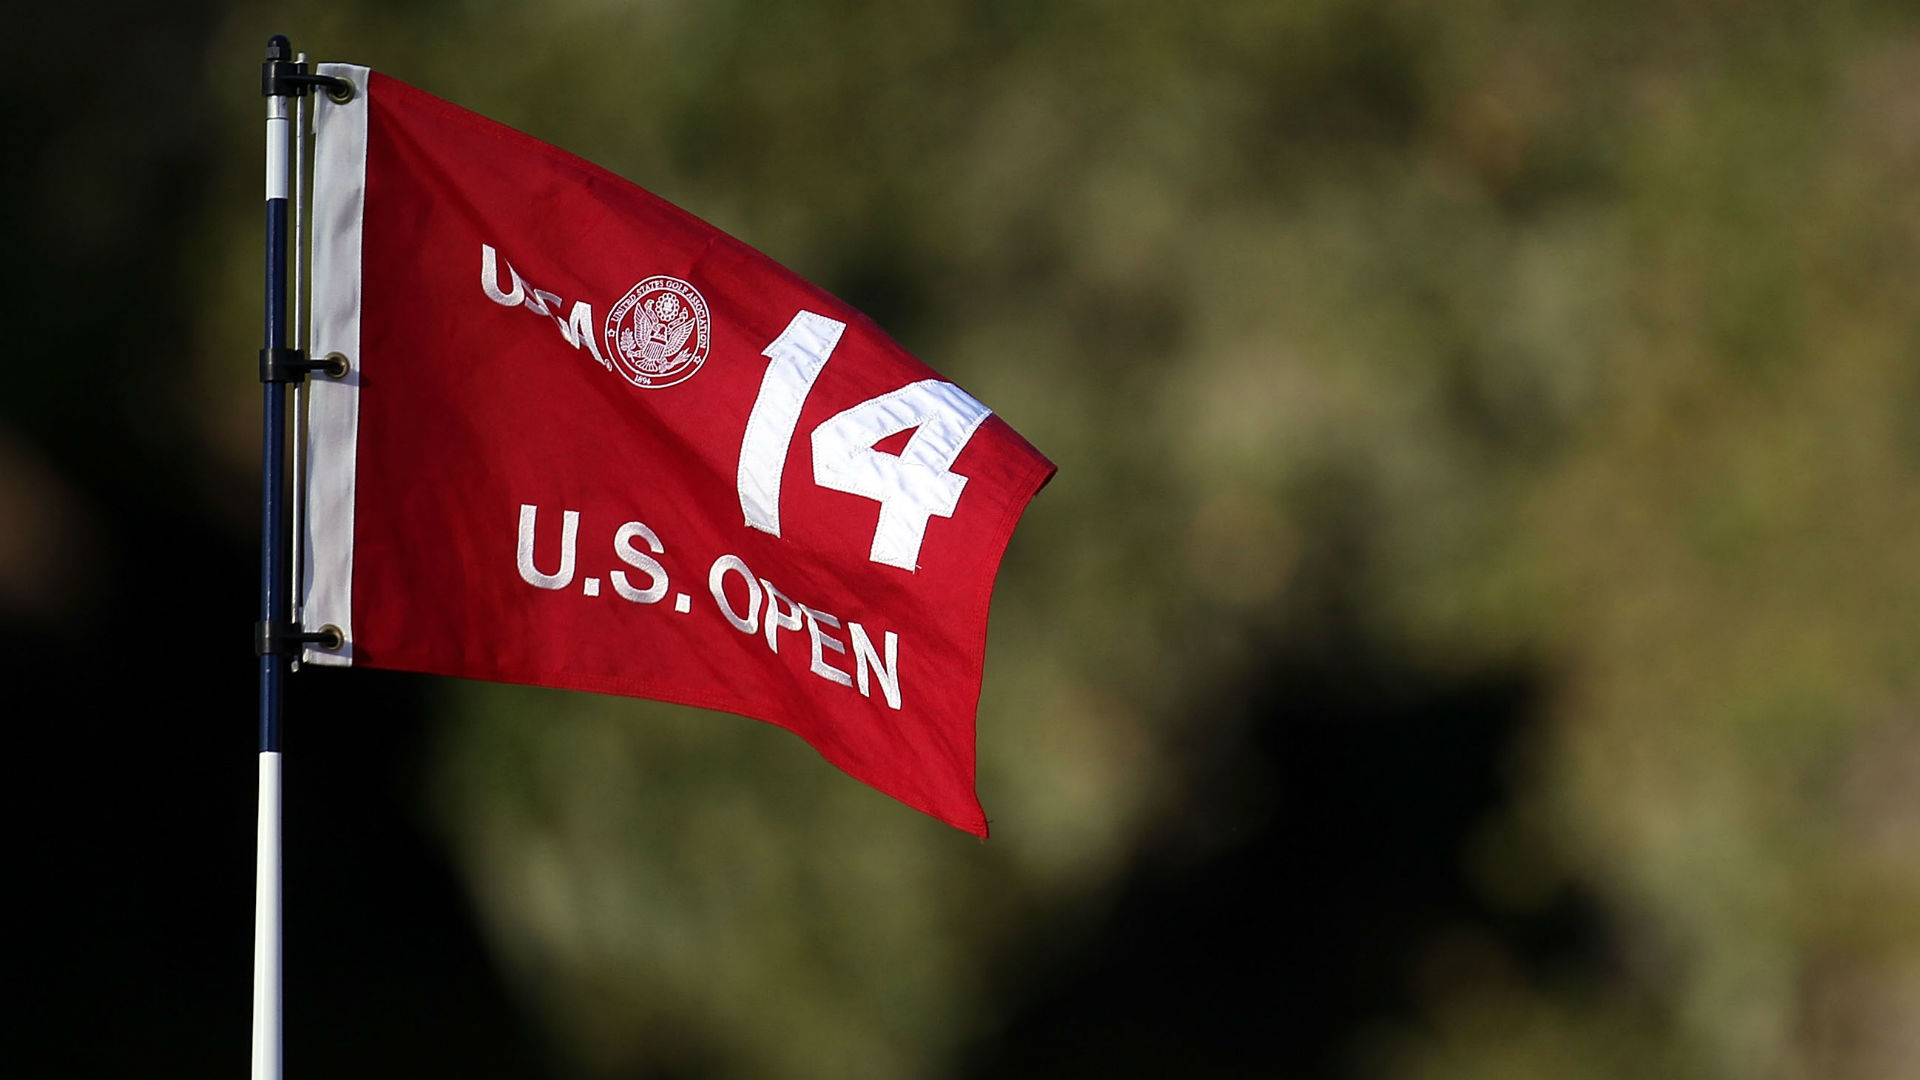 Pro shoots 55-over 127 in US Open local qualifying